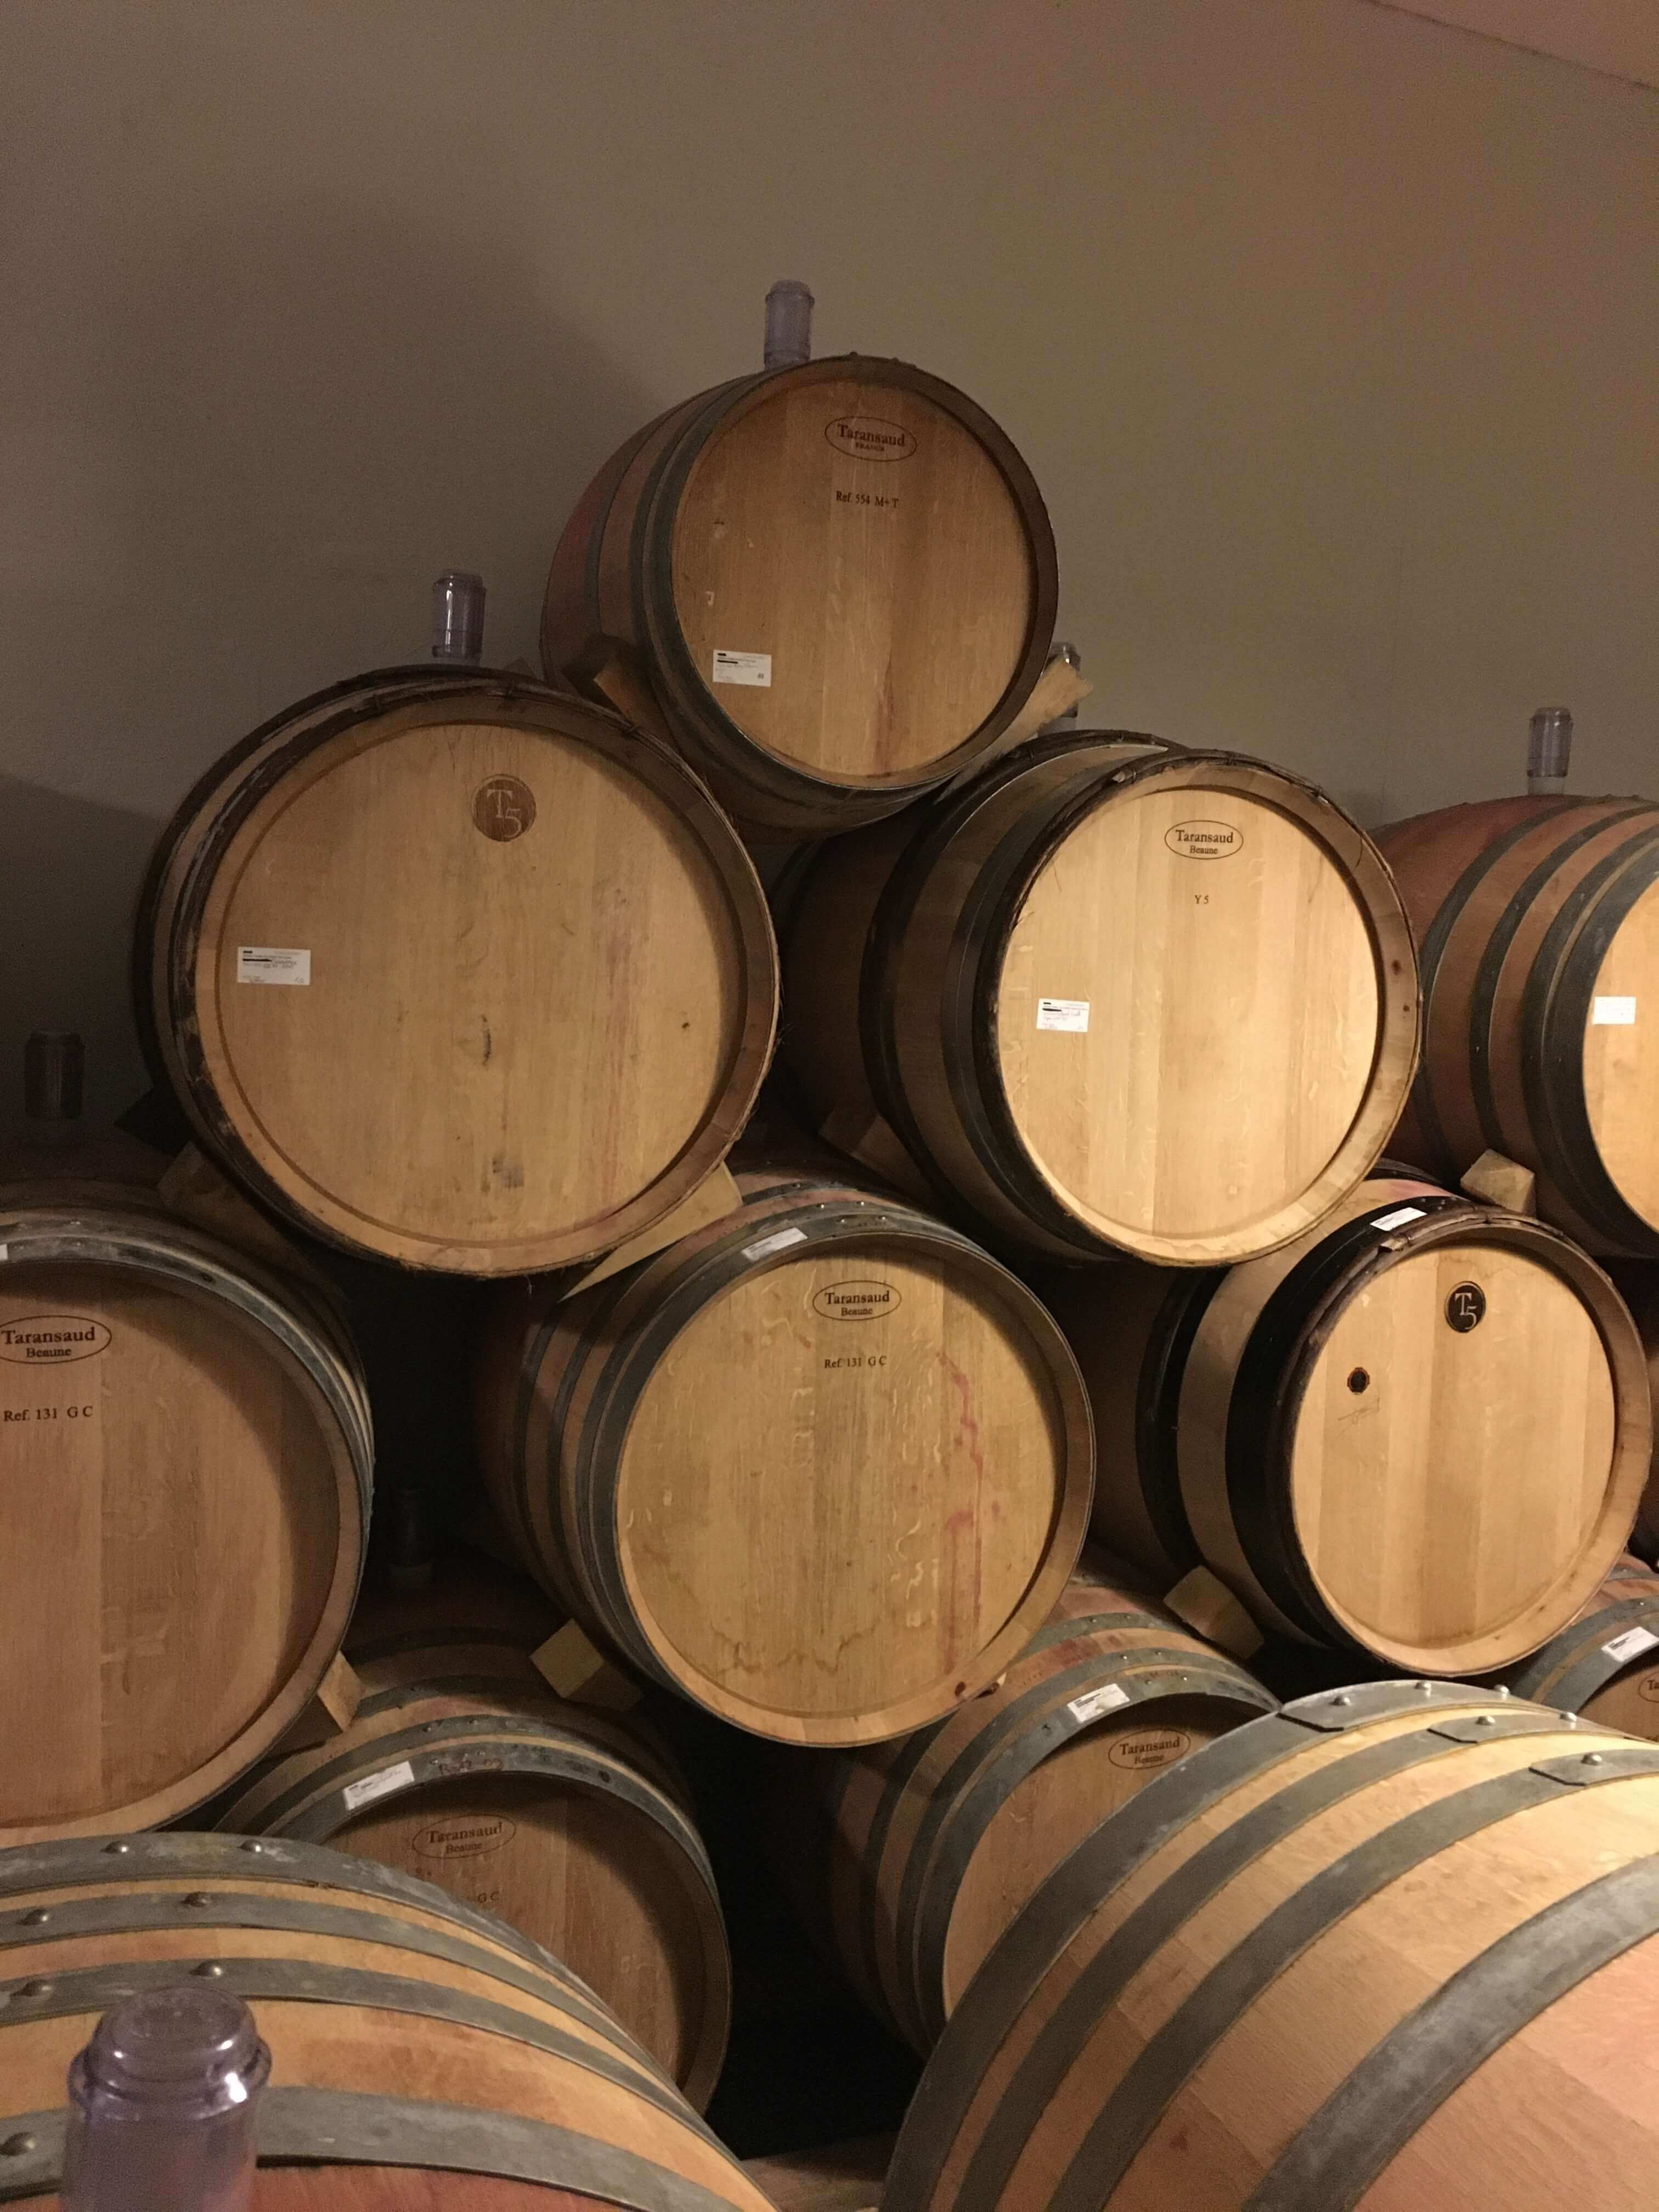 Wine aged in barrels in our cellar – Histoire d'Enfer